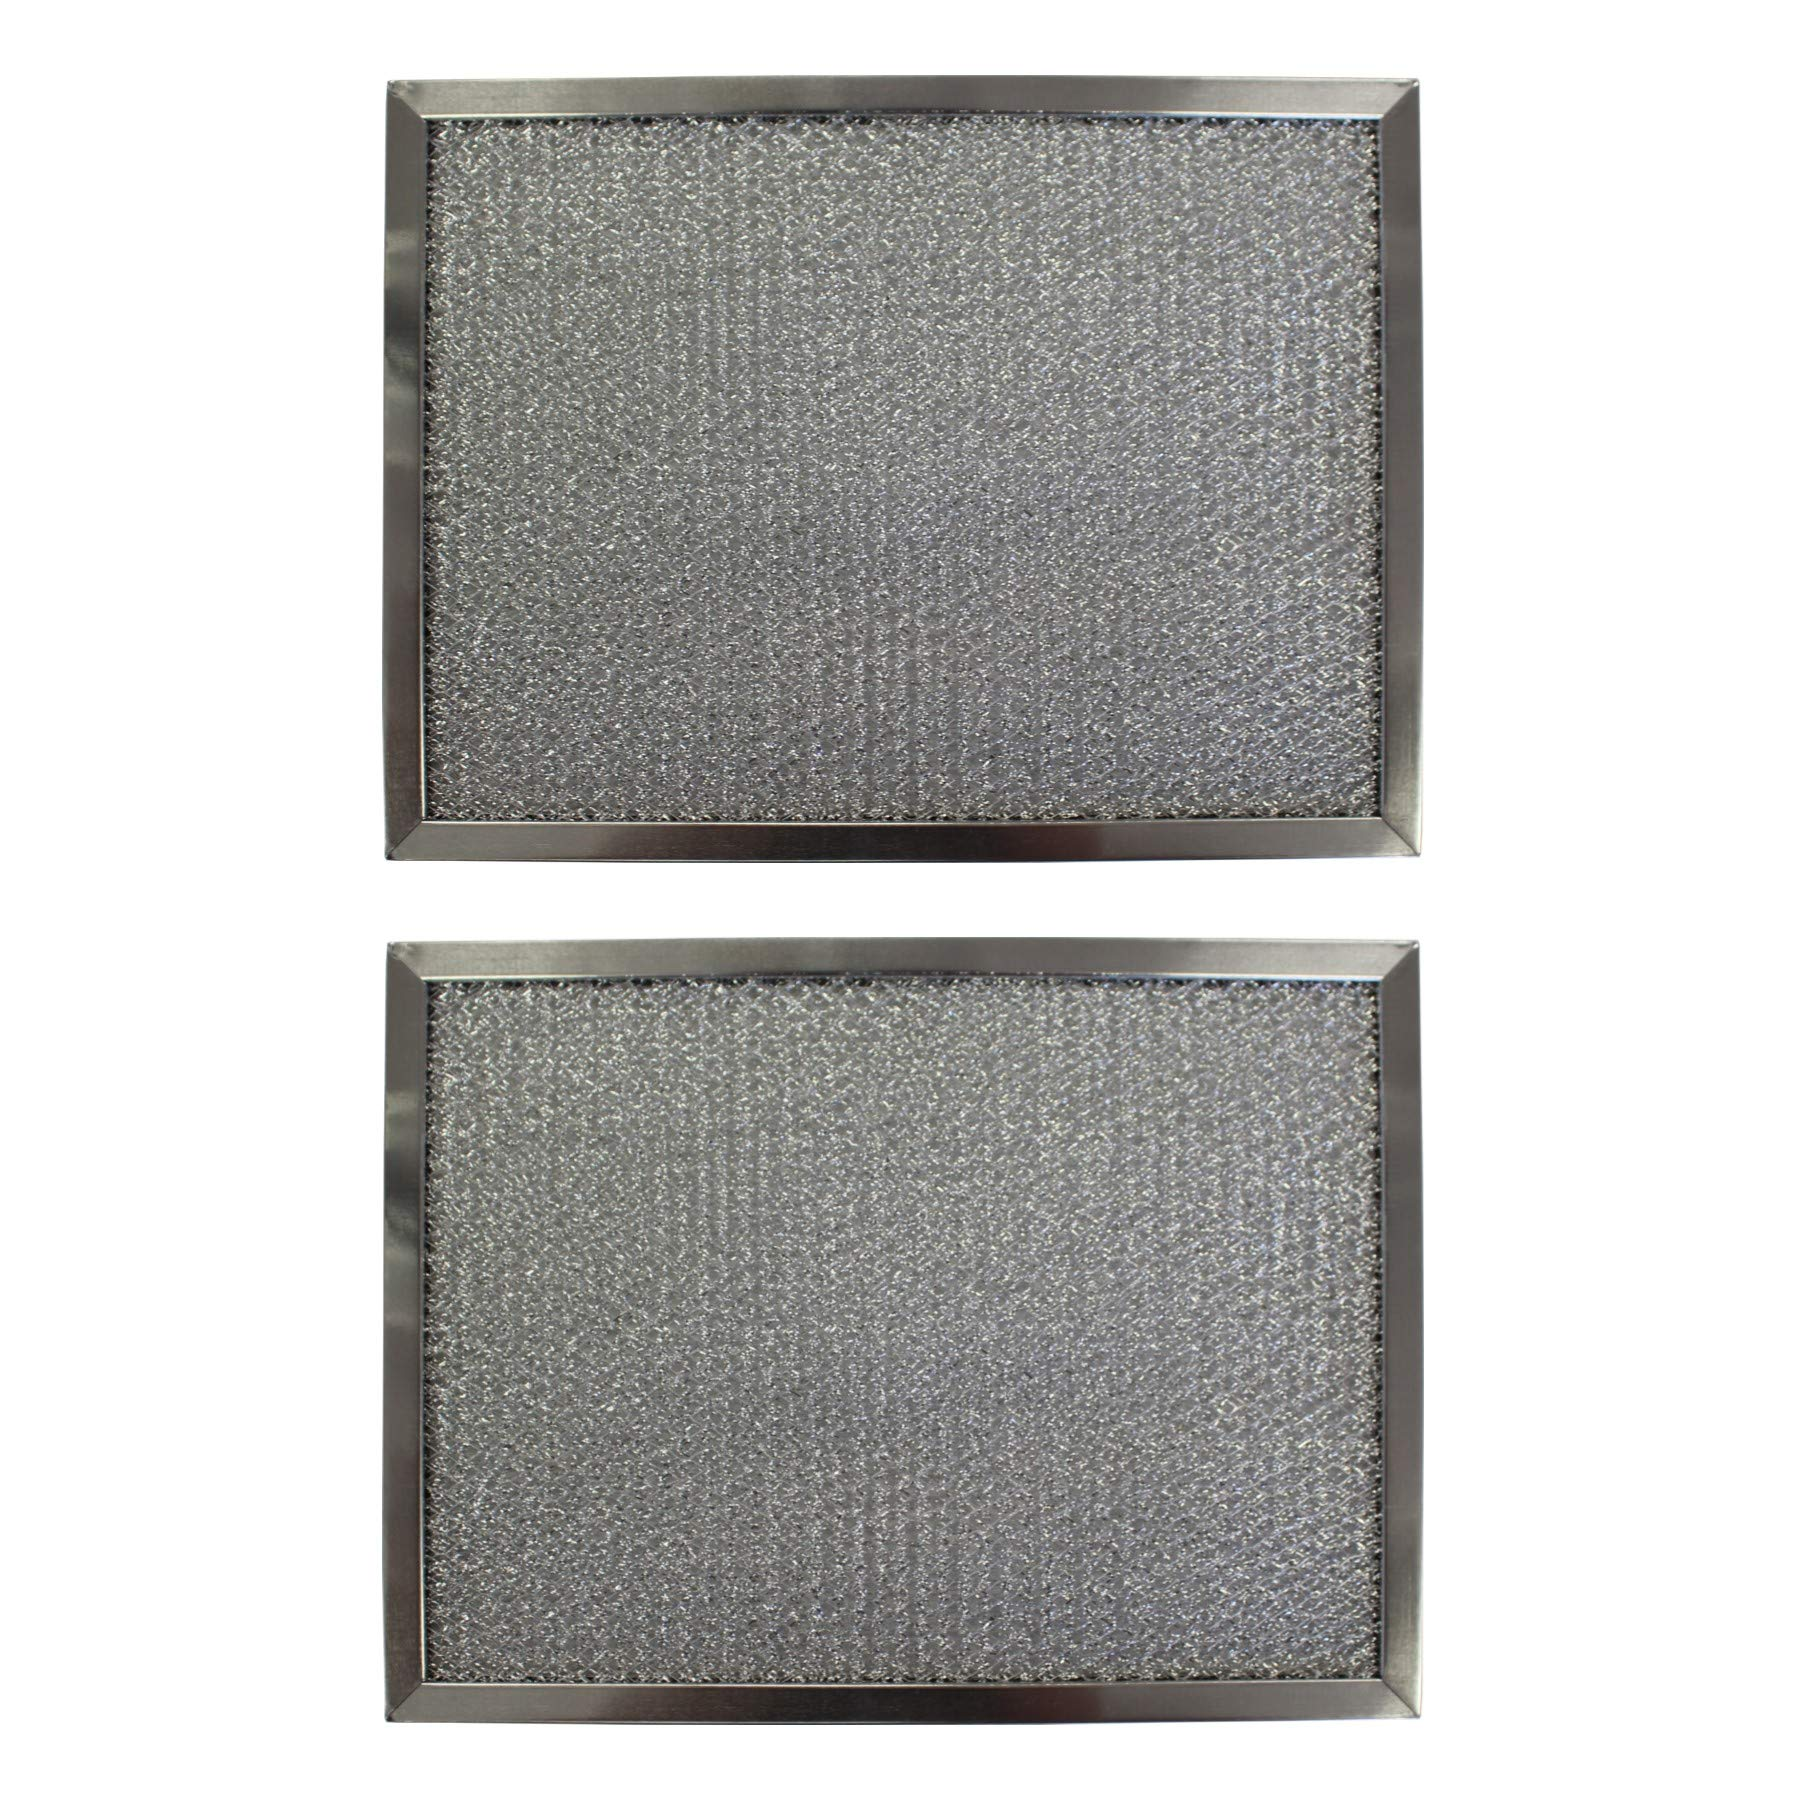 Replacement Aluminum Filters Compatible with Nutone K3595 000, Nutone K3595000, Nutone K3995, Nutone